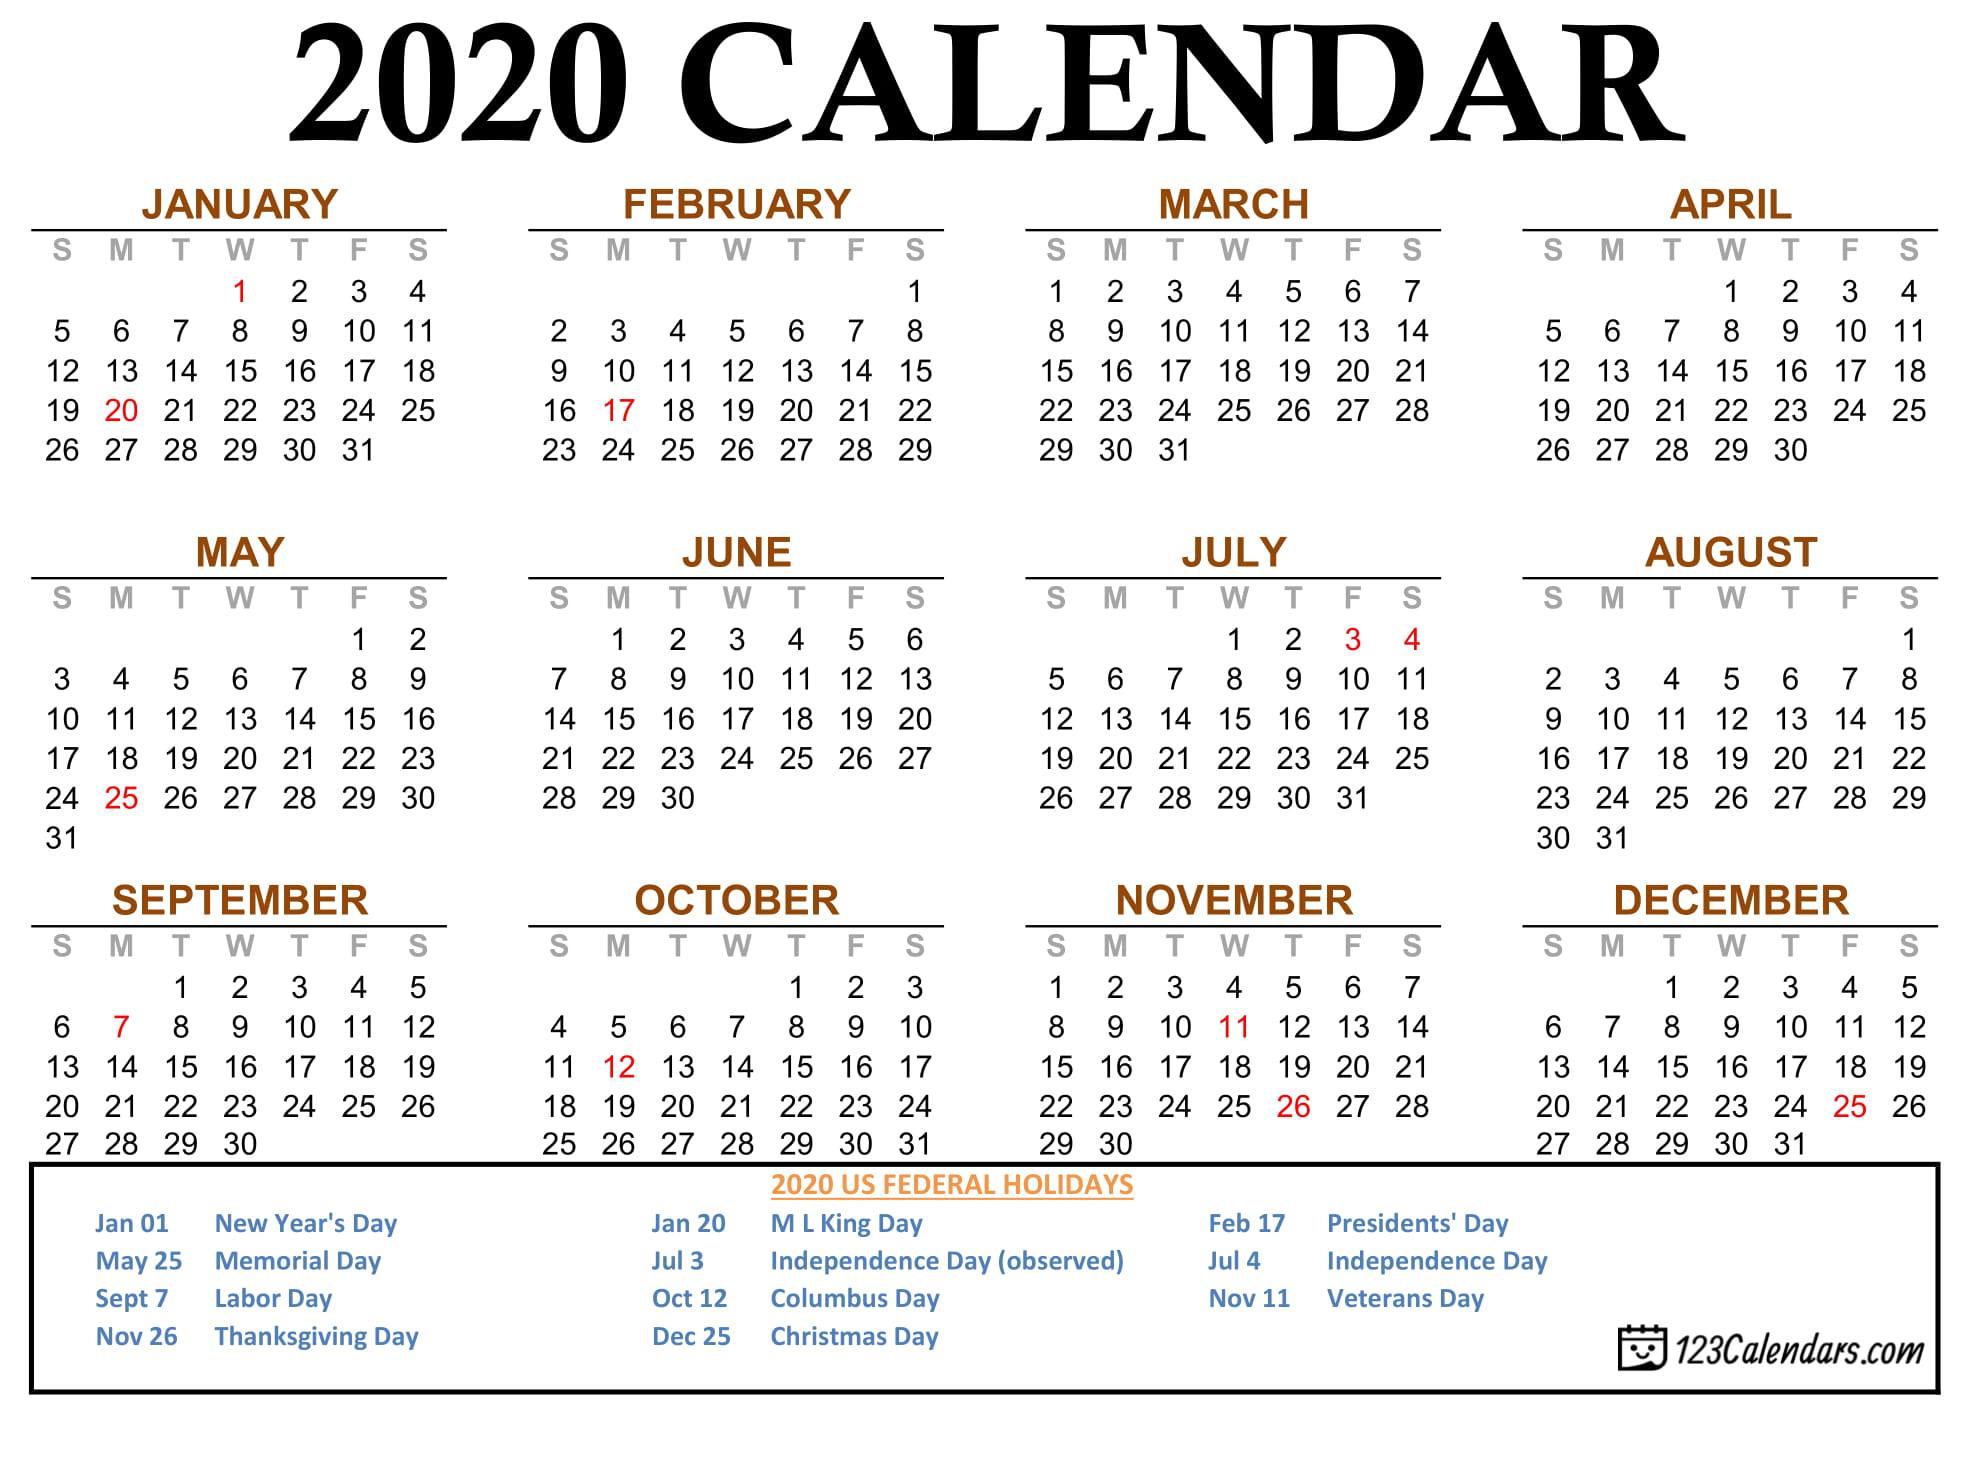 Free Printable 2020 Calendar | 123Calendars within 123 Calendars January 2020